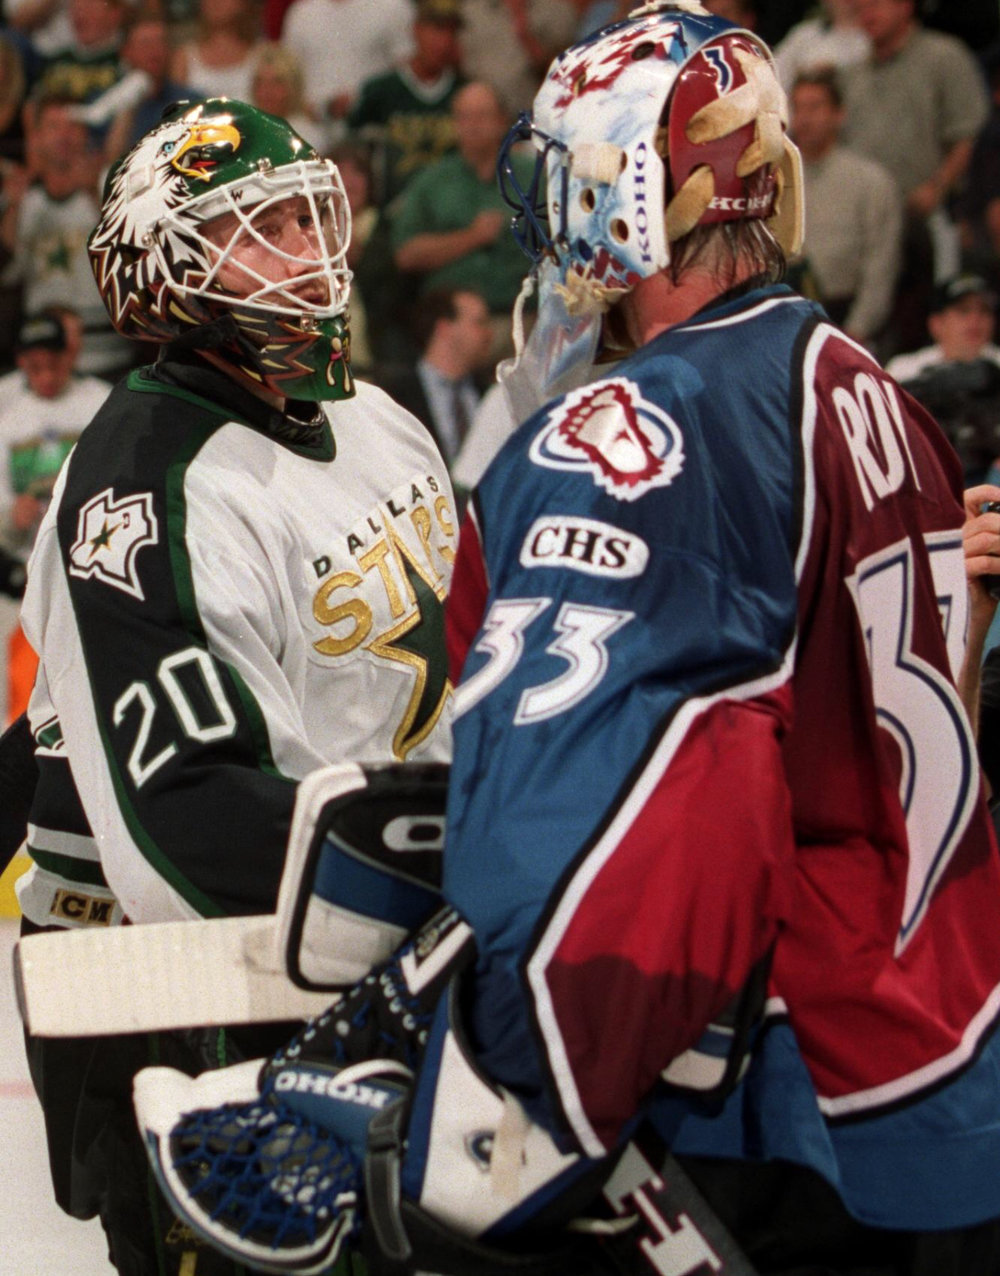 (Via Dallas morning news)